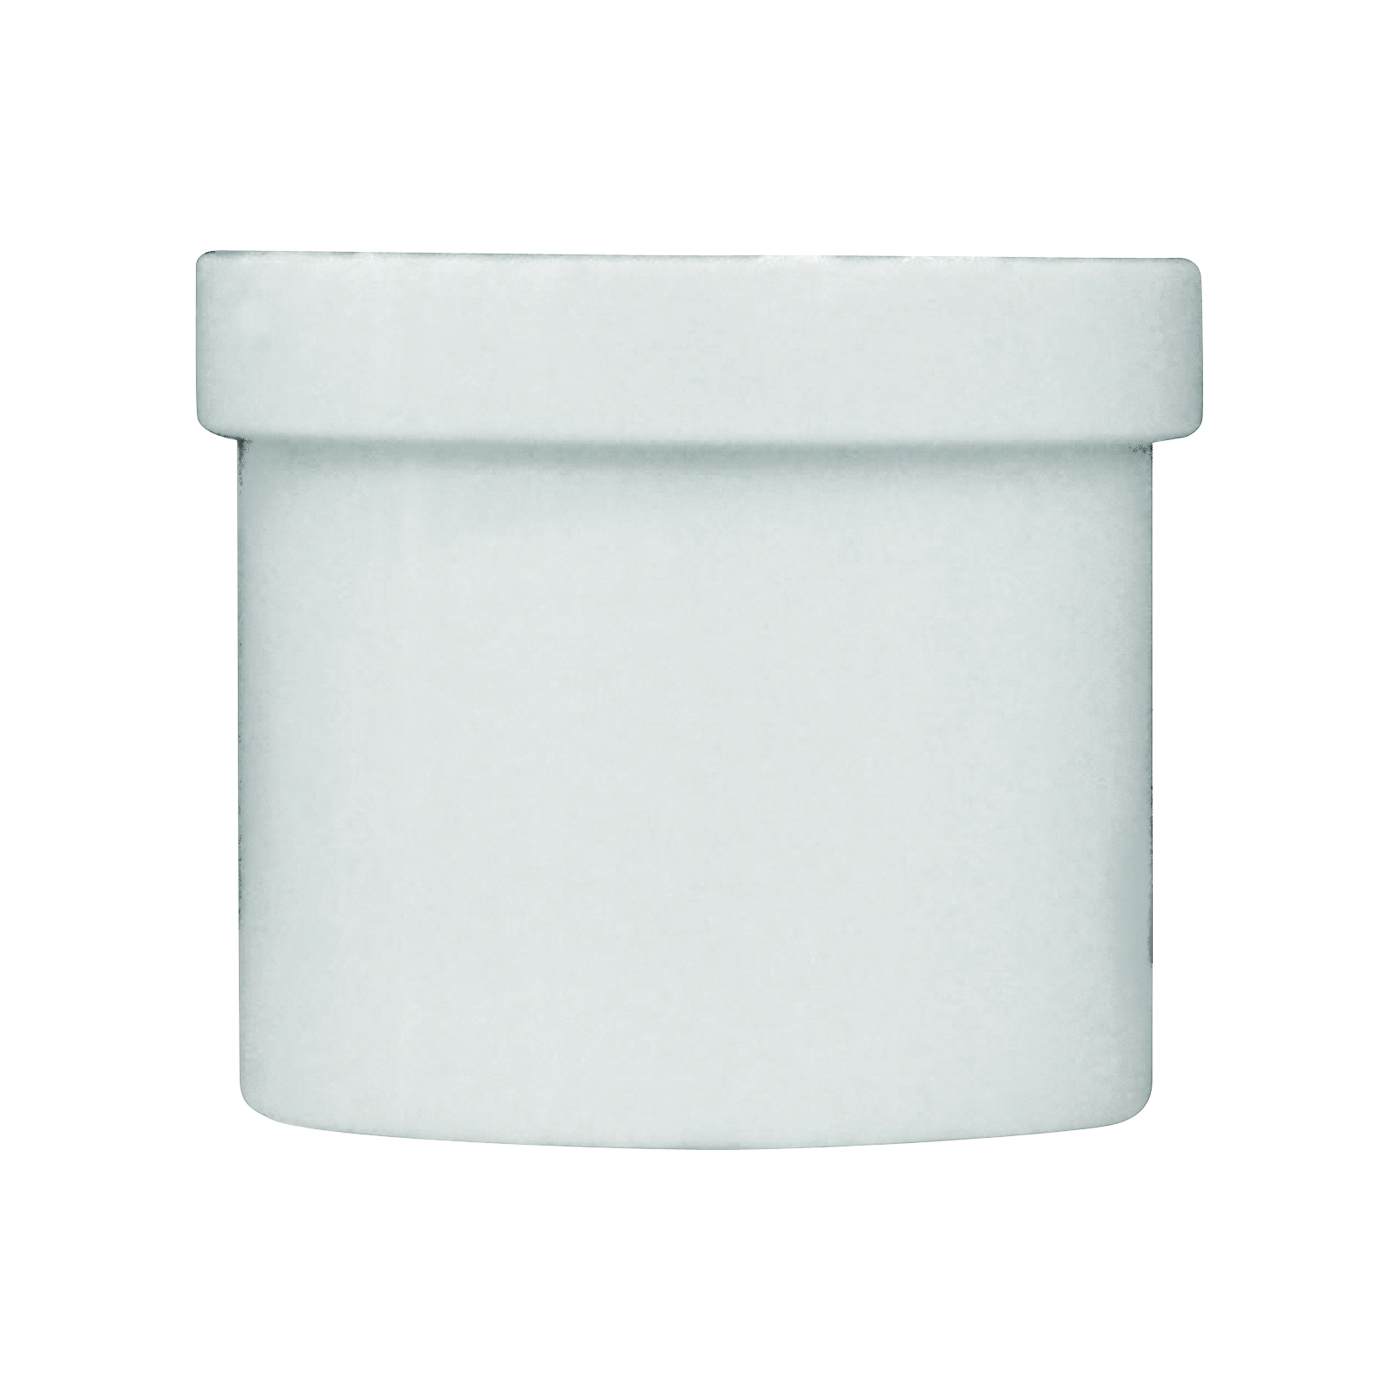 Picture of GENOVA 31830 Pipe Plug, 1 in, Spigot, PVC, White, SCH 40 Schedule